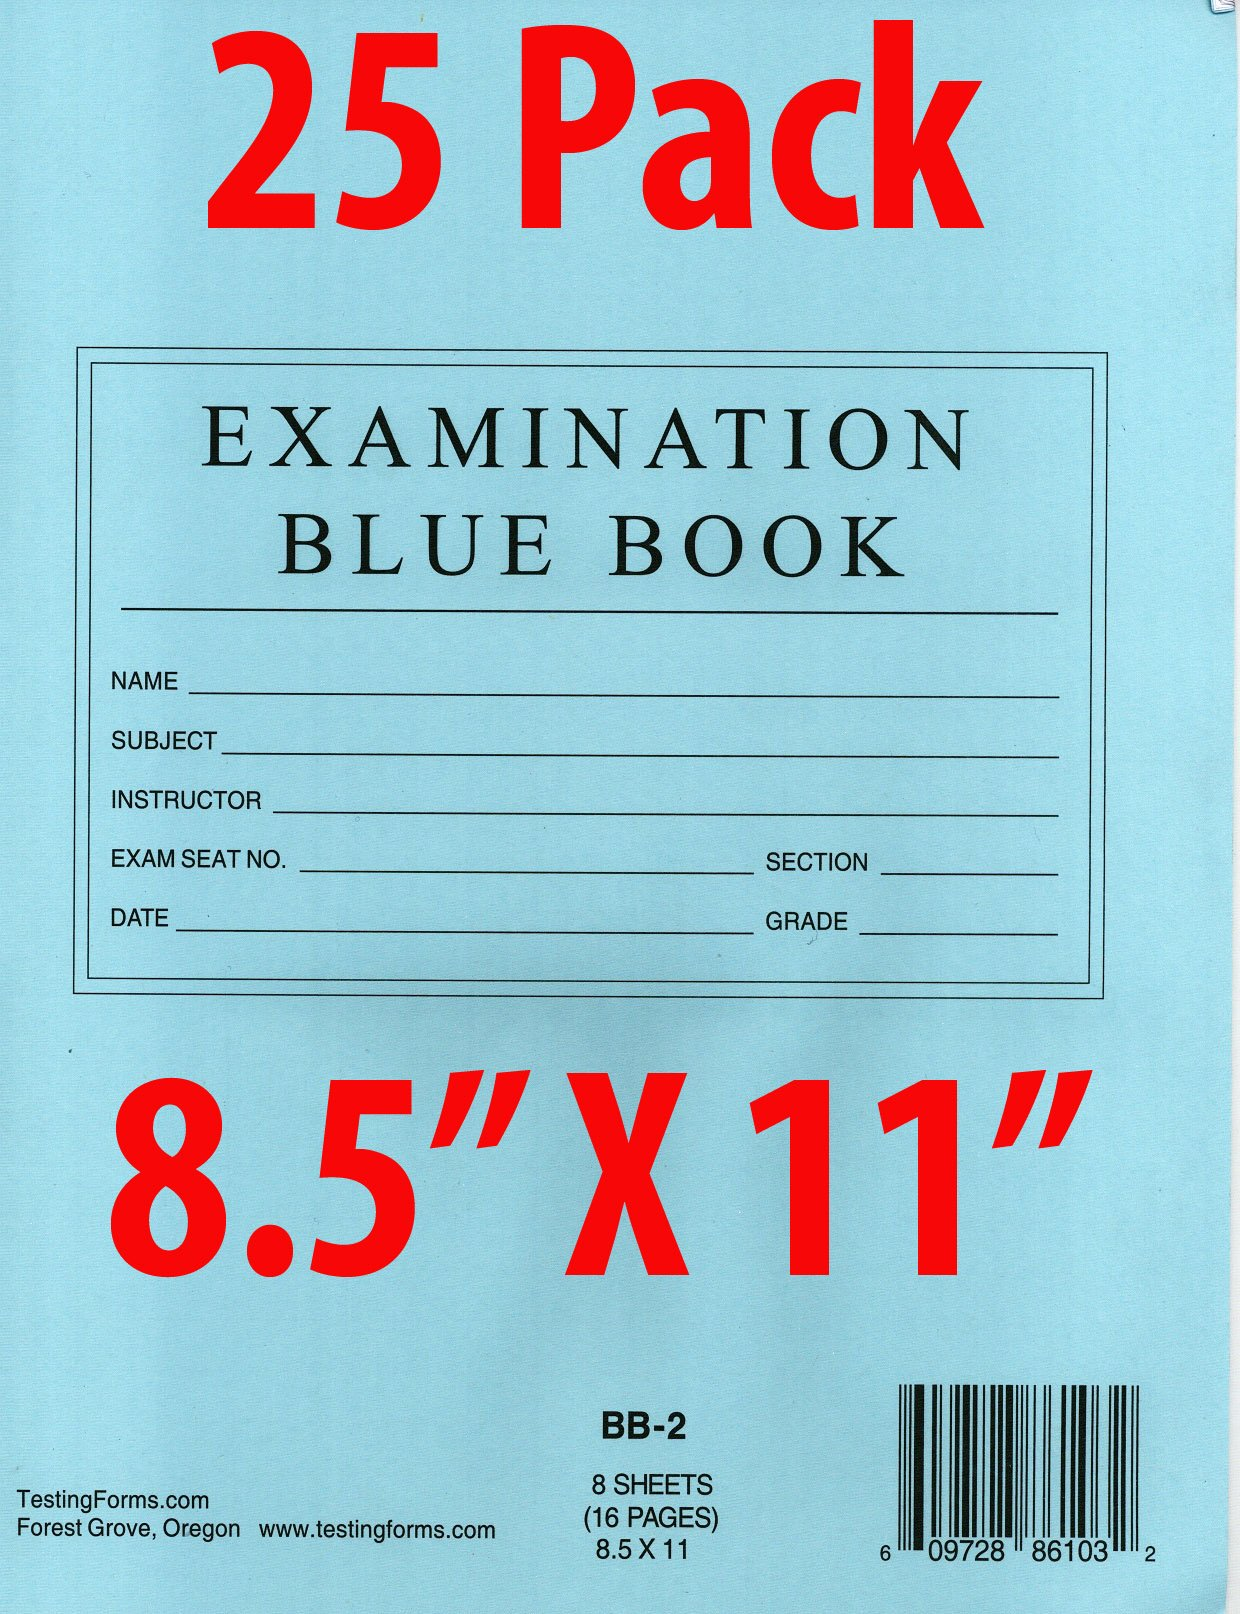 TestingForms.com 8.5'' x 11'' Examination Blue Book 8 Sheets 16 Pages 25 Booklets